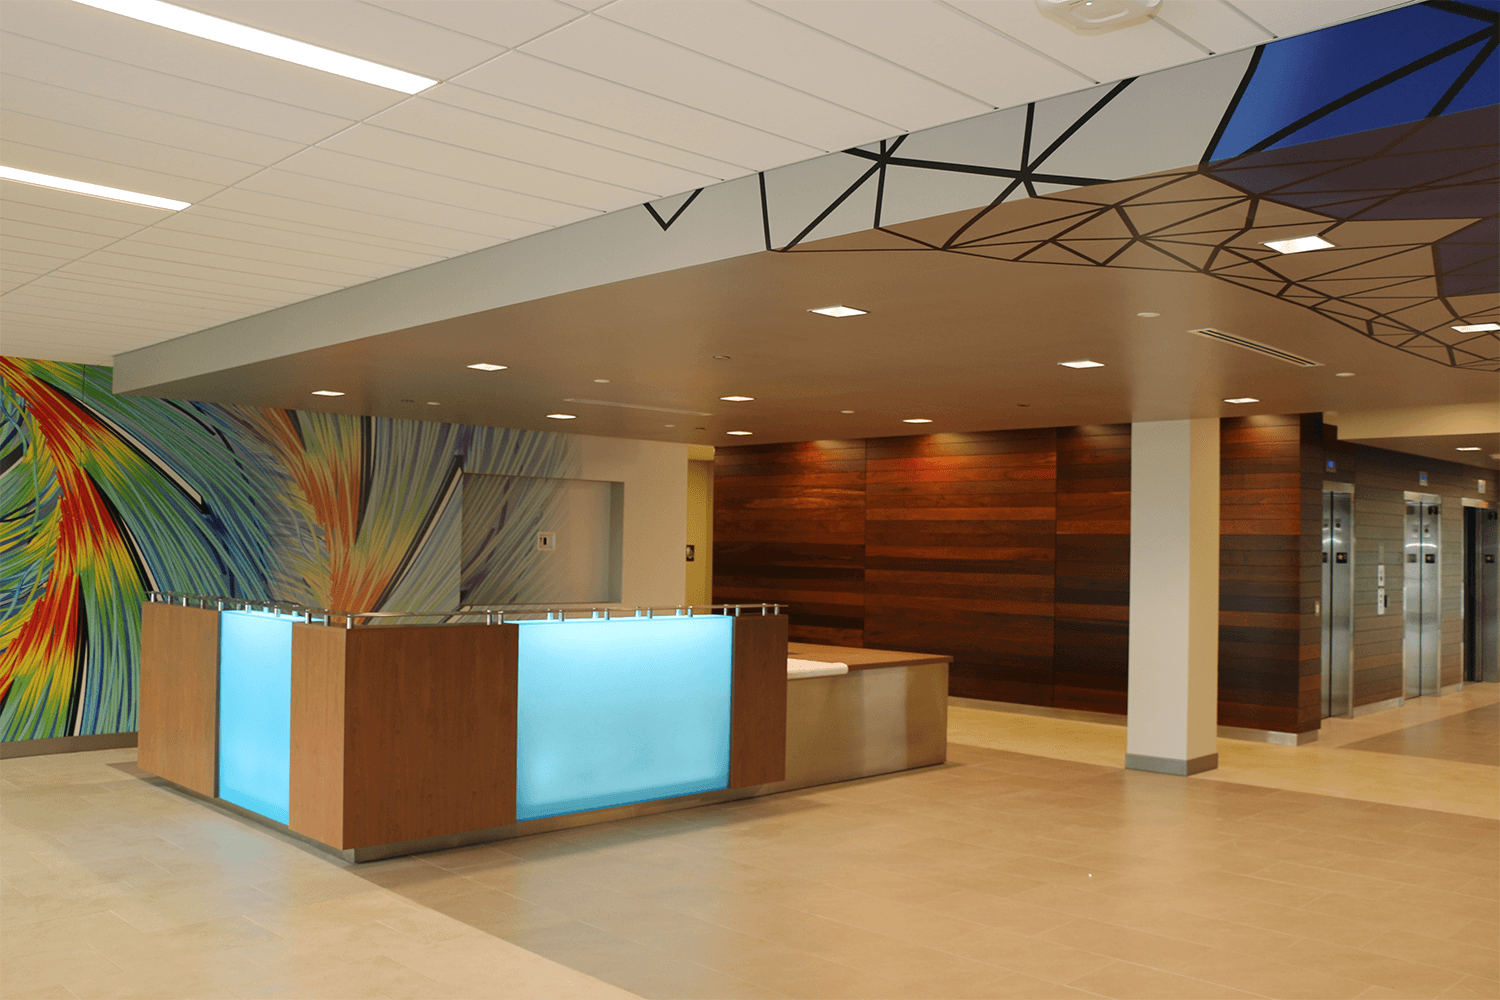 front desk with a build-in light panel, a wood accent wall beside it, and other walls with geometric and funky patterns